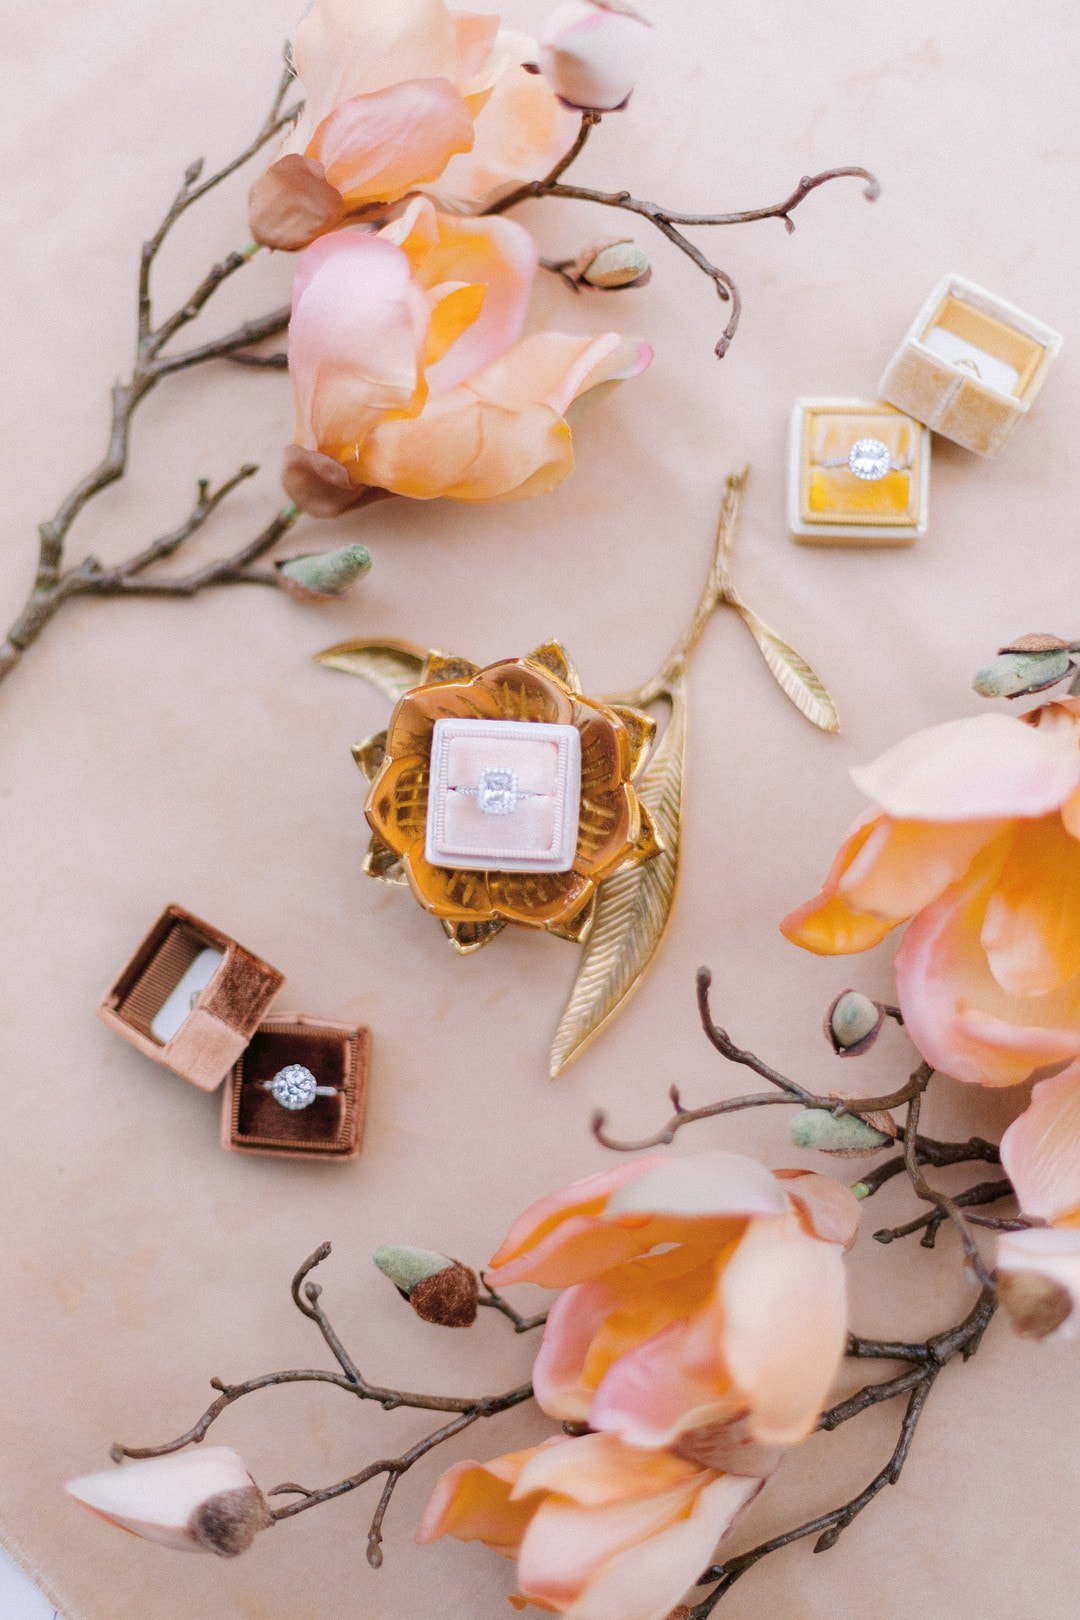 Higuera Ranch Wedding Inspiration for Floral Lovers, Photography by Apollo Fotografie {Fine Art Wedding Photo & Video} for Destination Wedding Blog Adriana Weddings